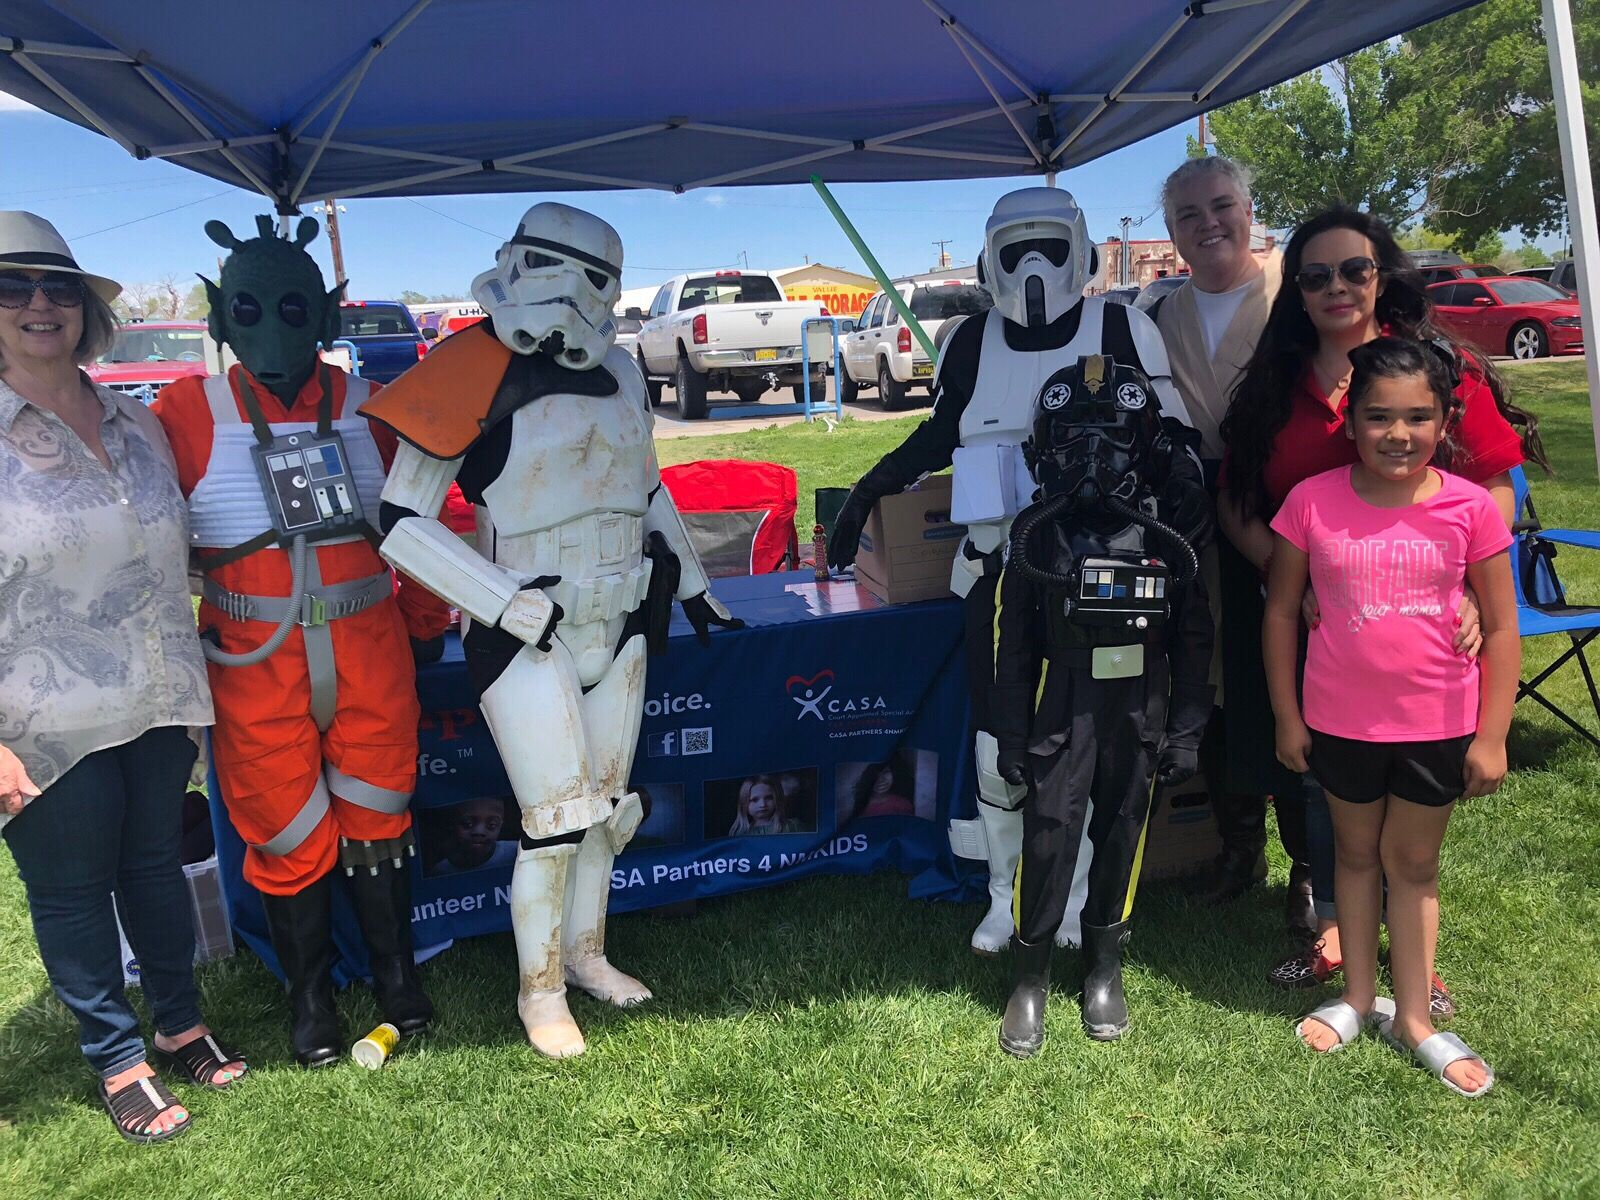 Family and Community Fun with The Rio Grande Guardians of the Children